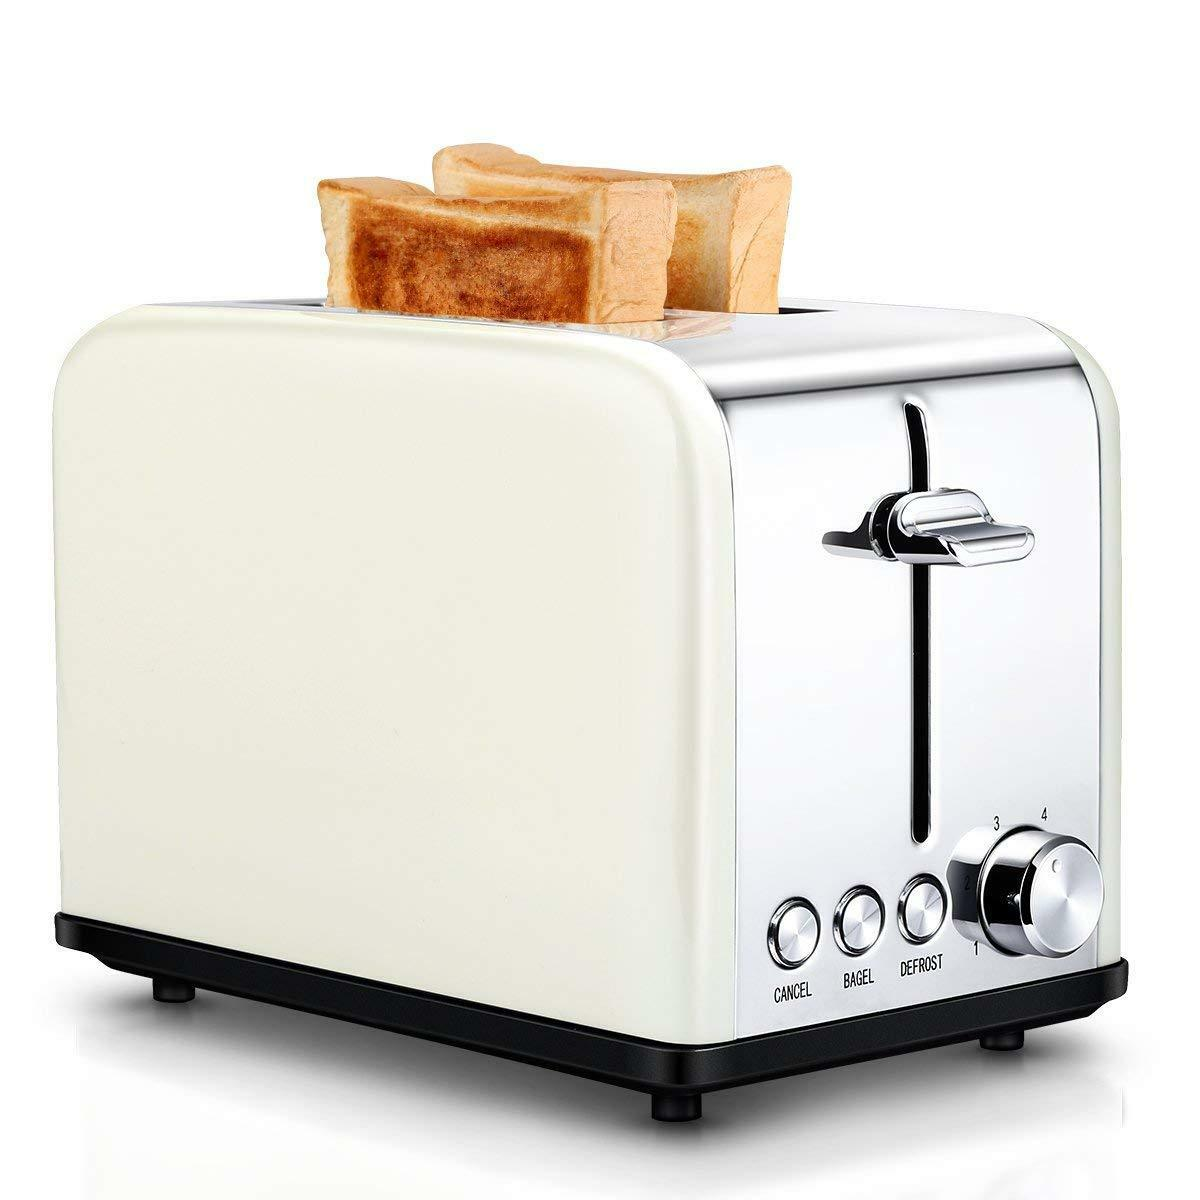 Retro 2 Slice Toaster Electric Vintage Wide Slots Bread marroning Settings TOBOX